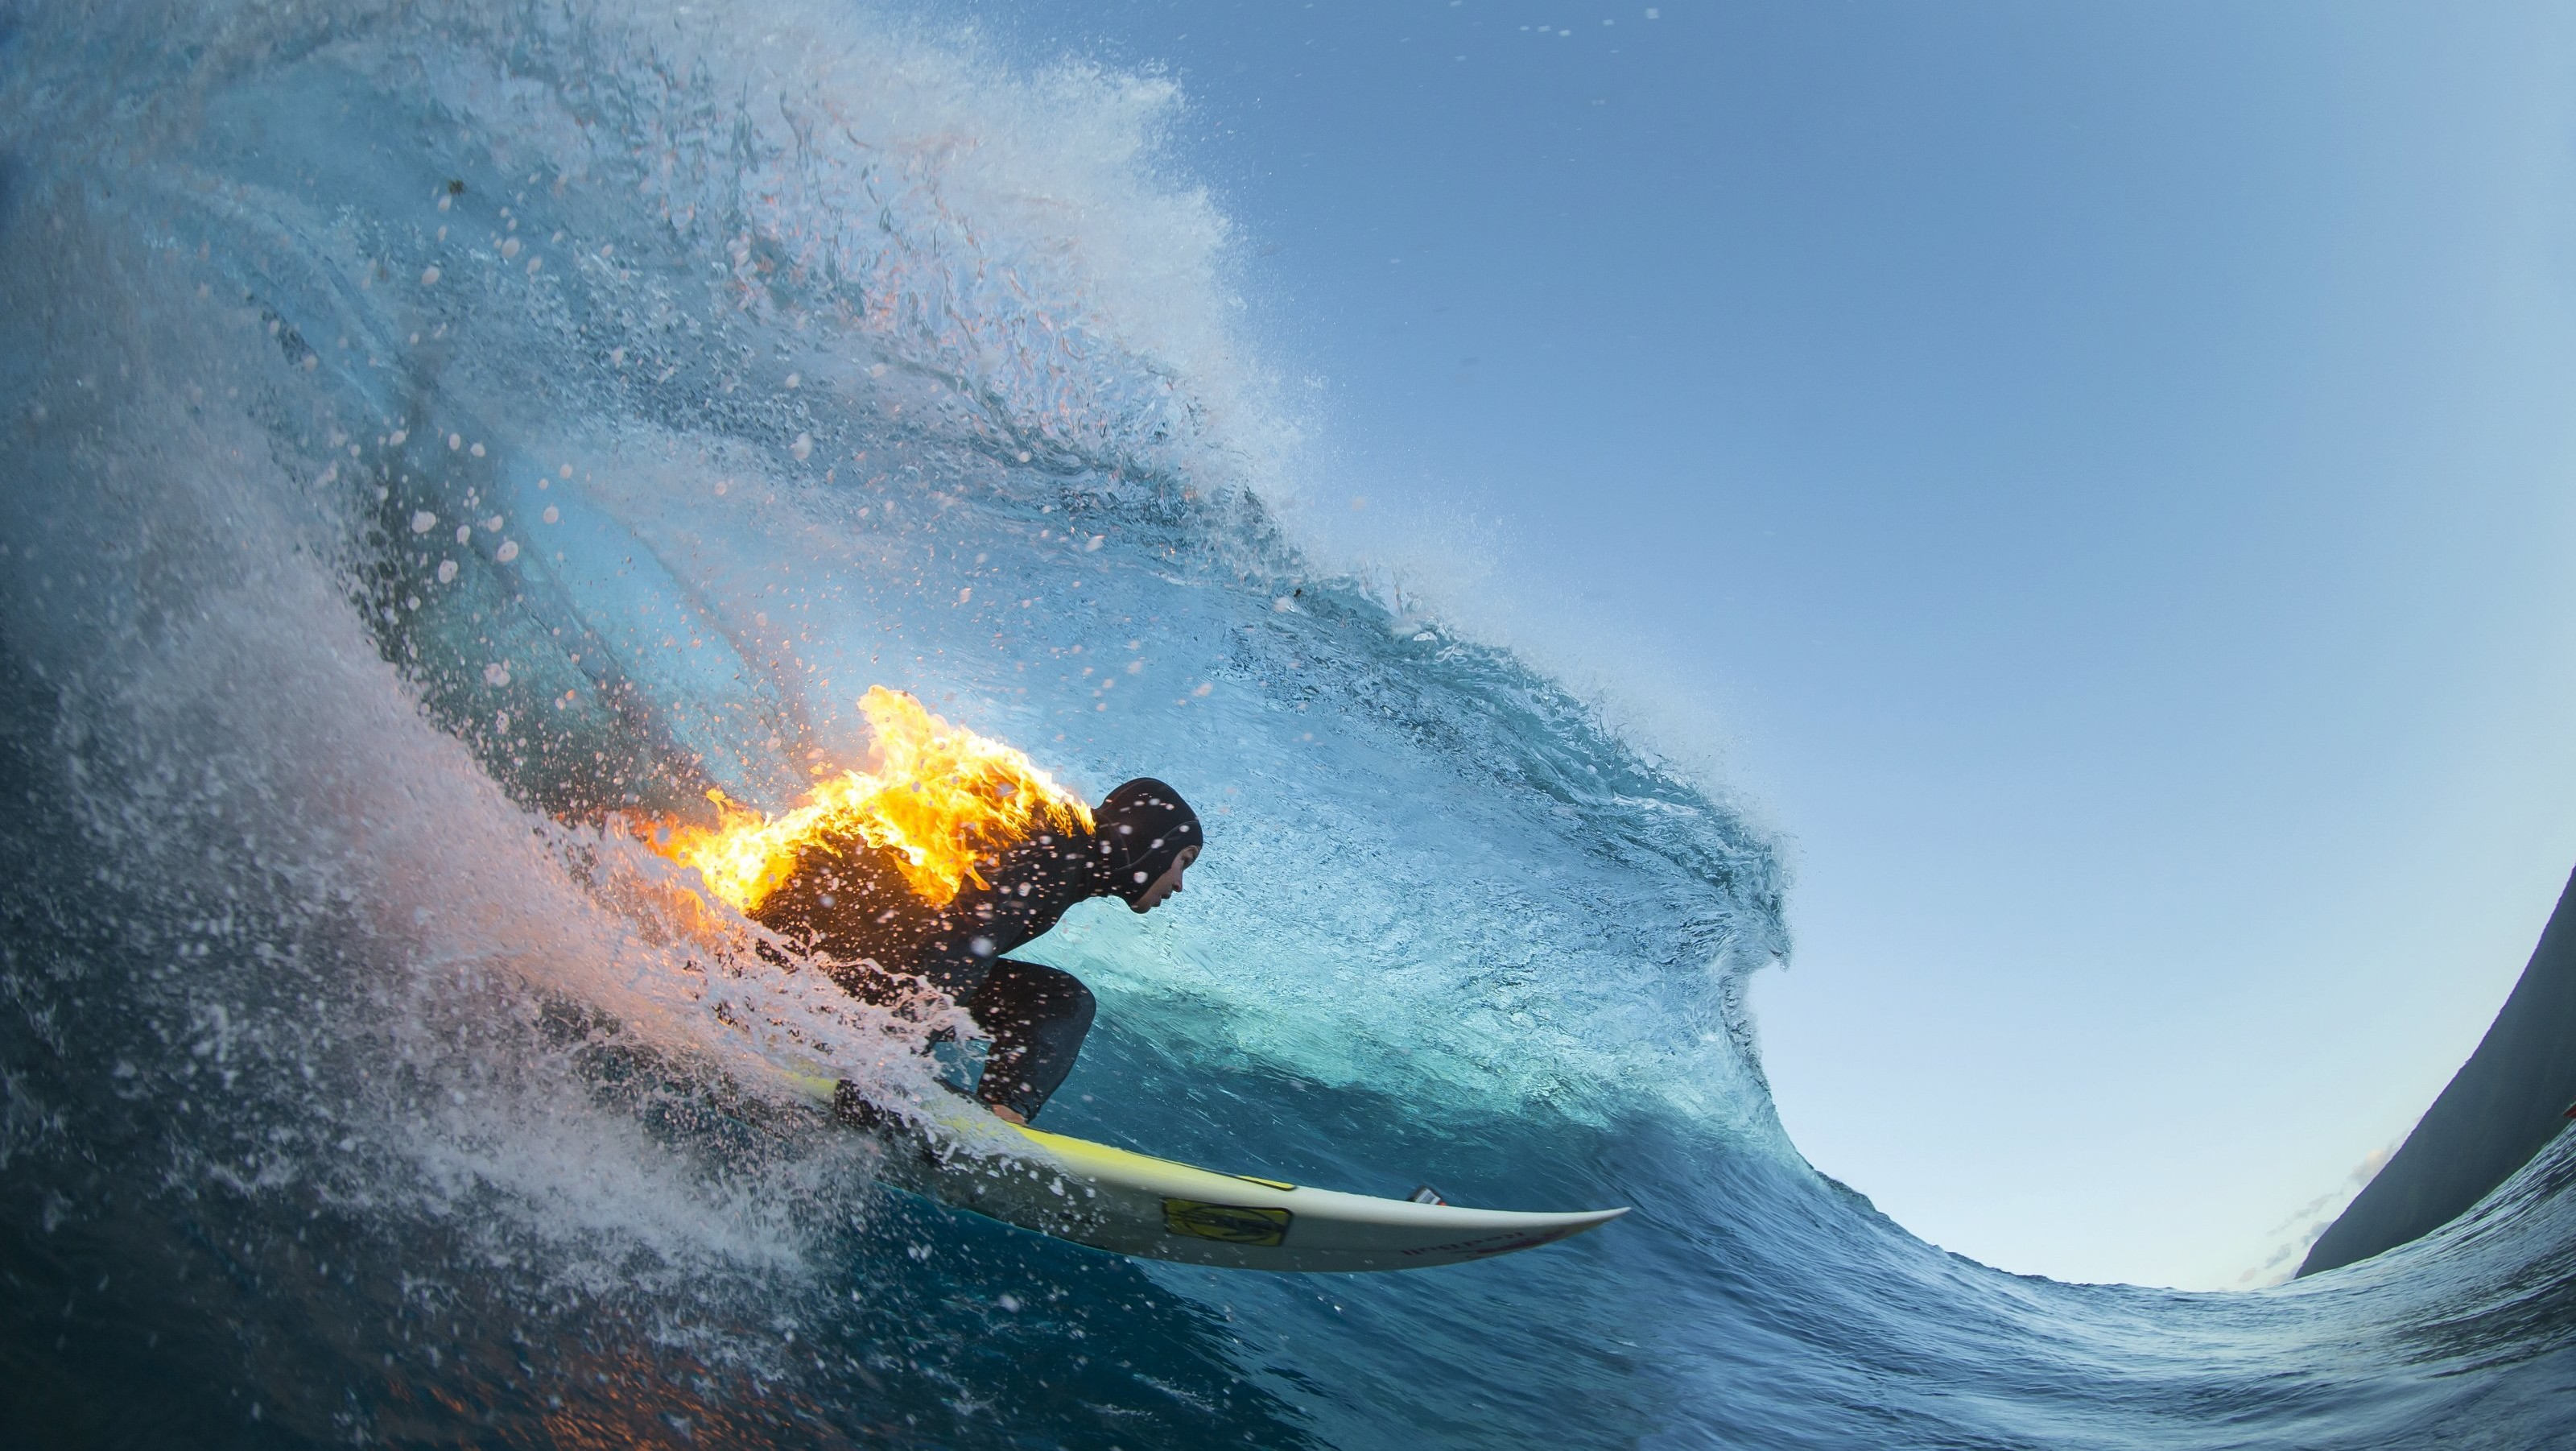 Surfing on Fire for Facebook Likes